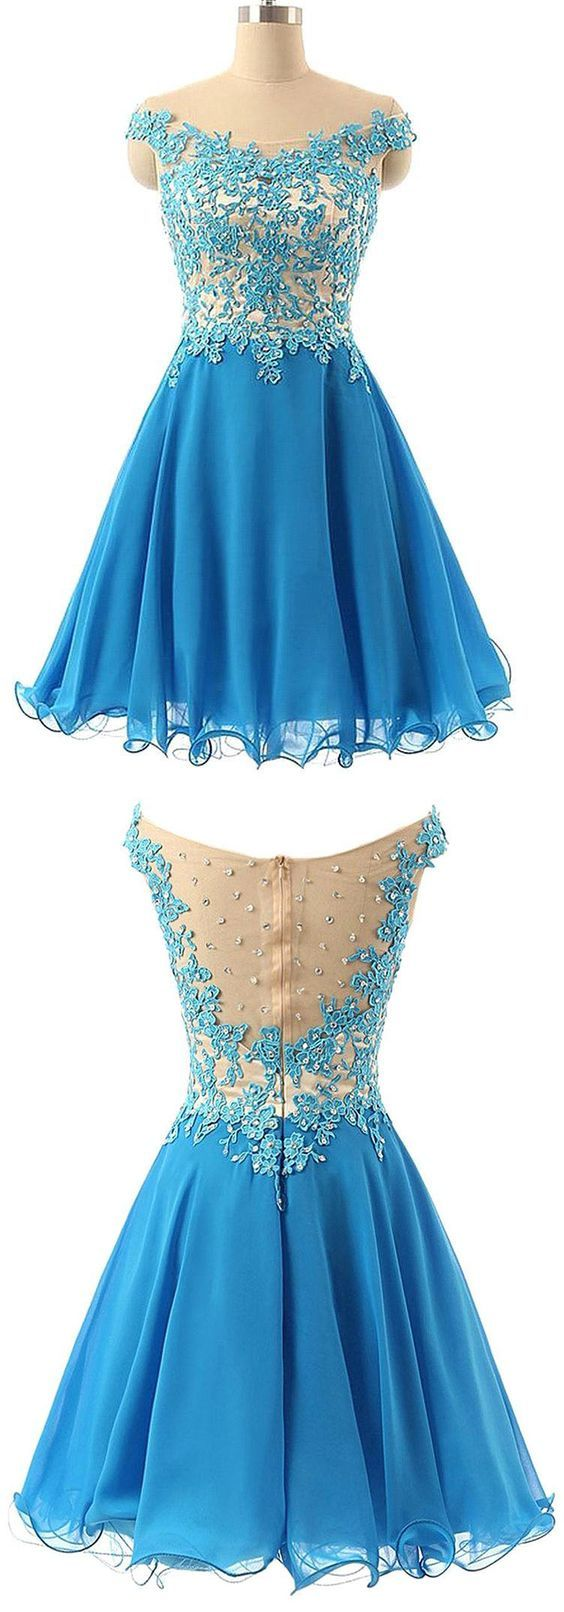 Appliques Homecoming Dress,Tulle Homecoming Dresses,Short Prom Dress F1113